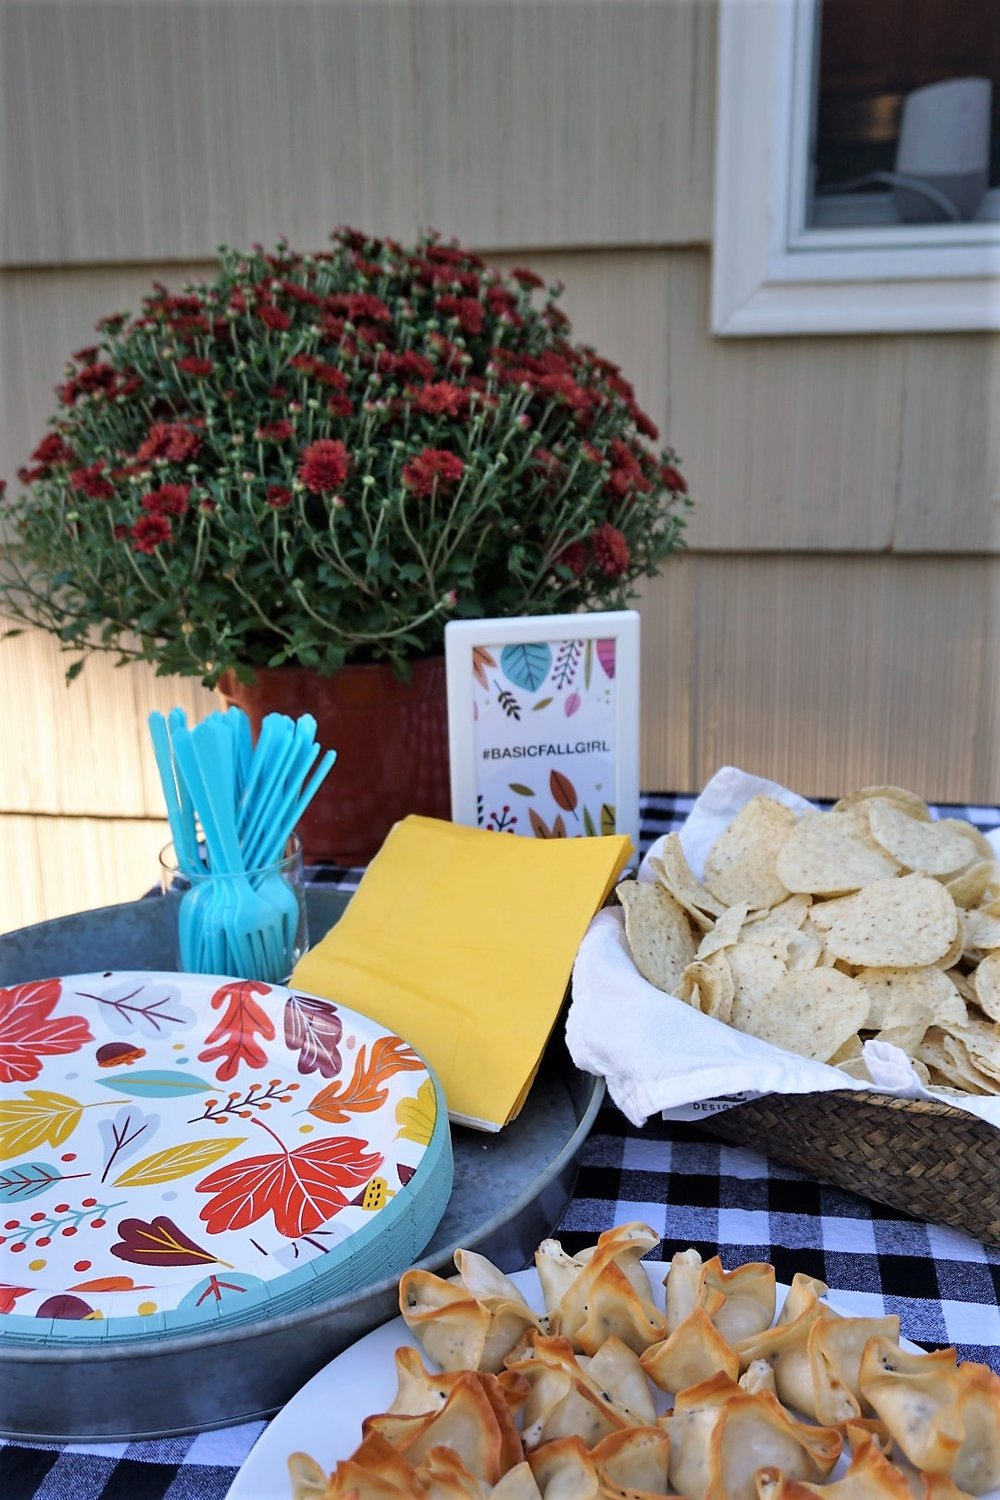 I love when you find coordinating plates at Target! Click here to re-create this fun fall party! | Legally Crafty #fallparty #bonfire #girlsnightin #girlsnight #basicfallgirl